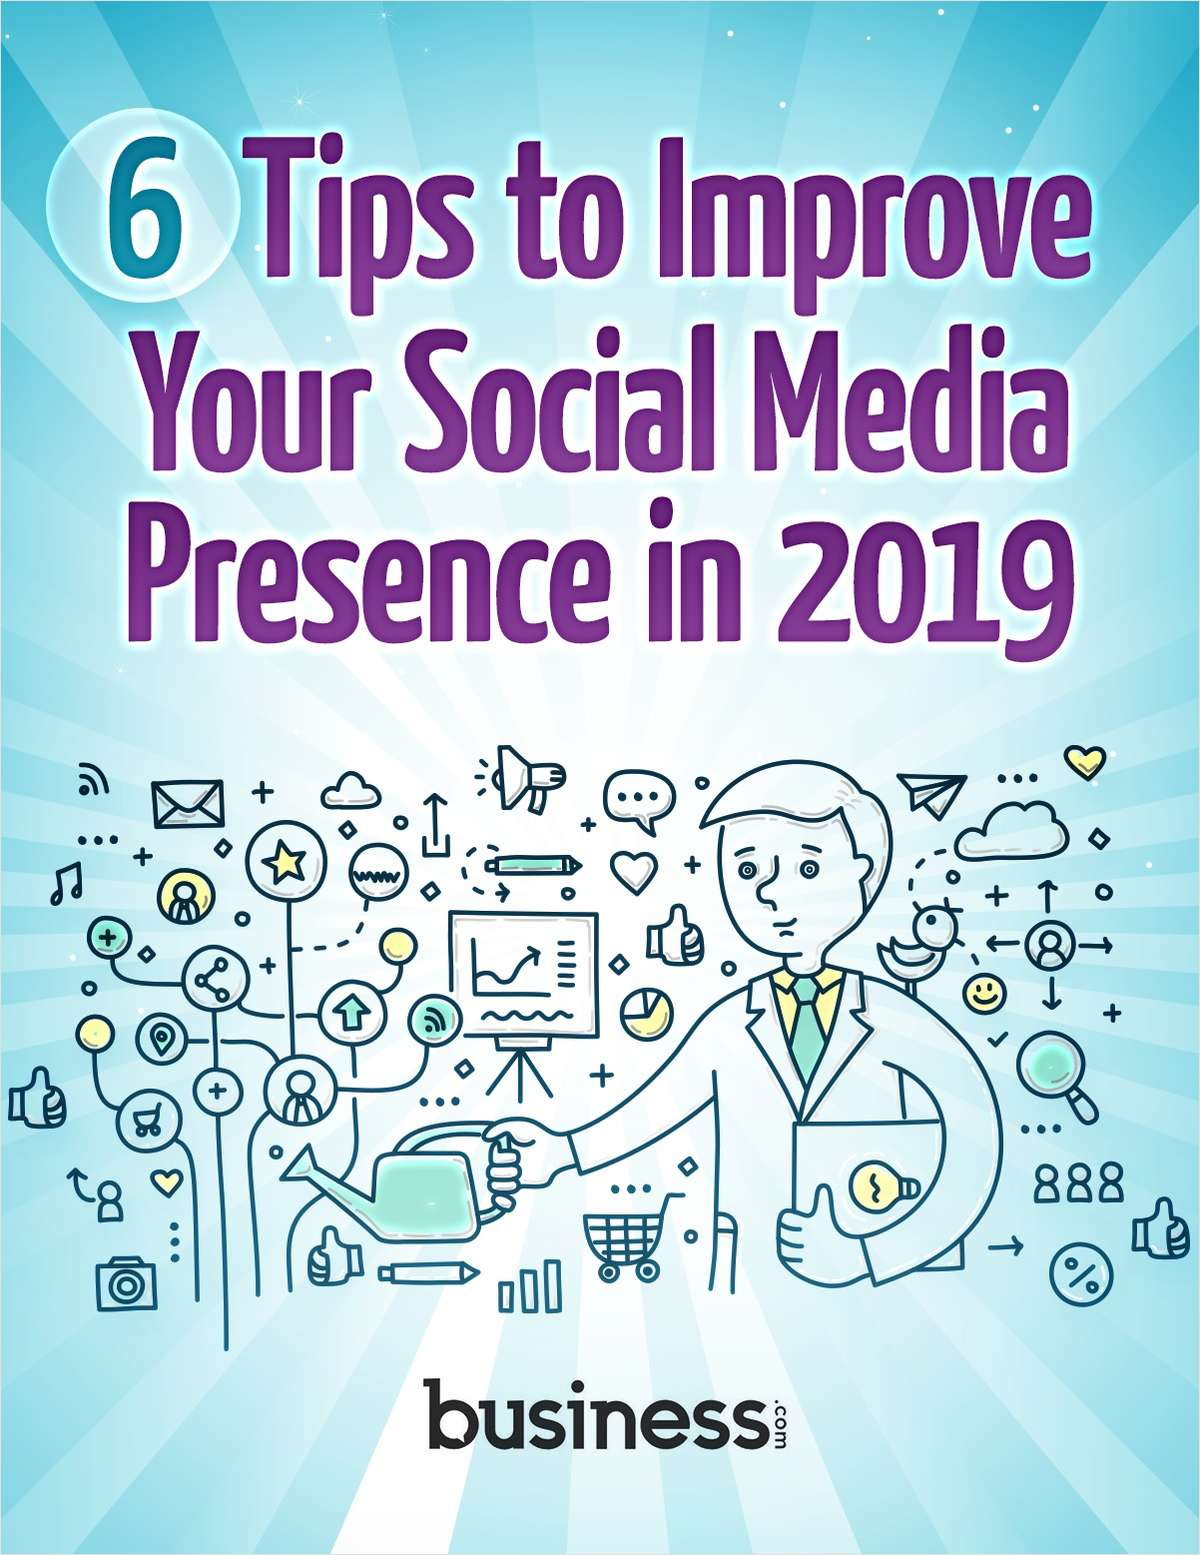 6 Tips to Improve Your Social Media Presence in 2019